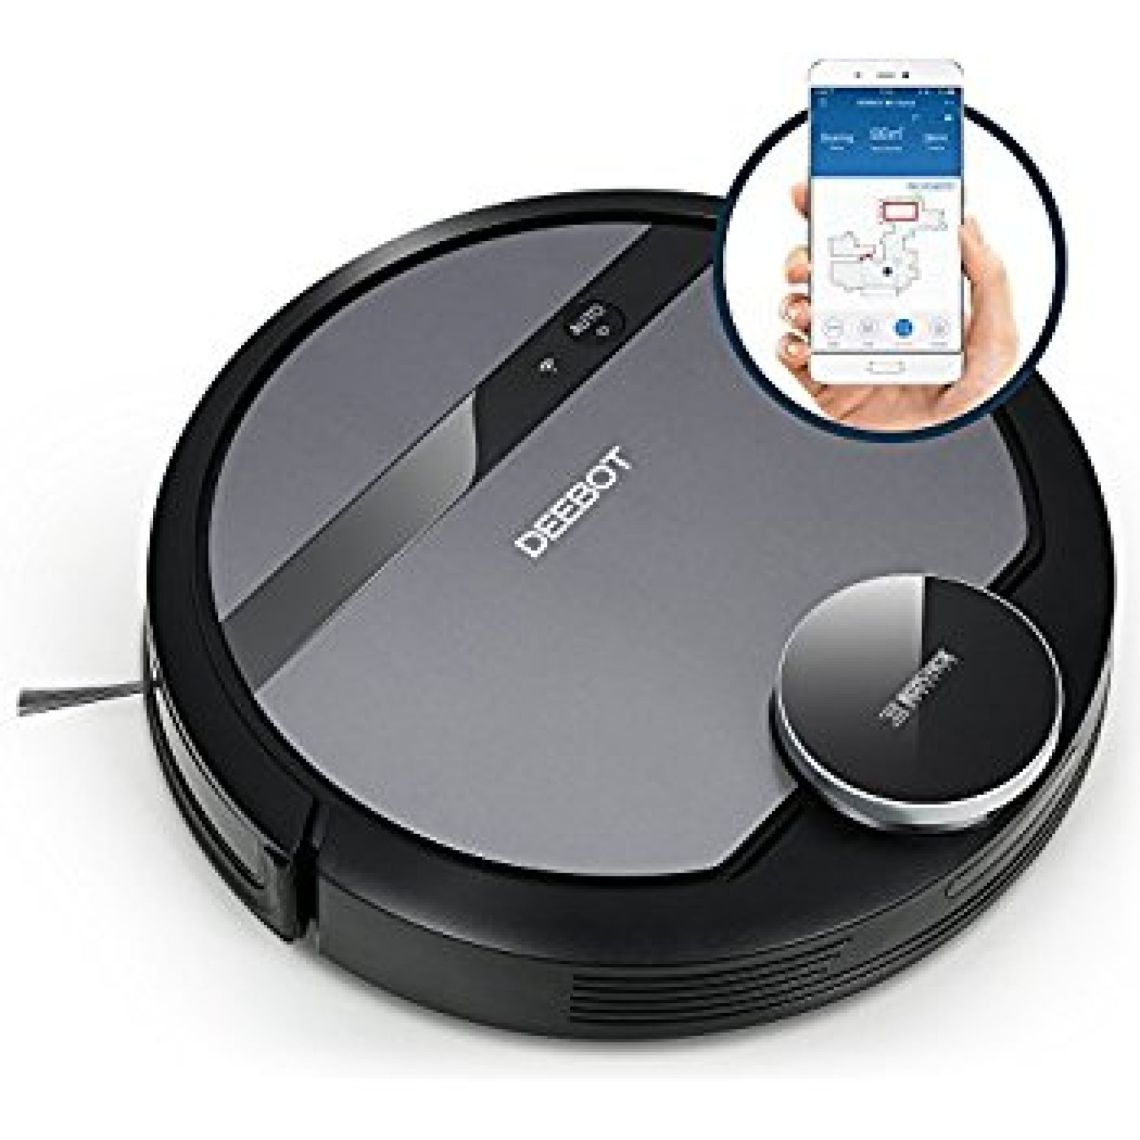 Amazon.com - ECOVACS DEEBOT 900/901 Smart Robotic Vacuum for Carpet, Bare Floors, Pet Hair, with Mapping Technology, Higher Suction Power, Wifi Connected and Compatible with Alexa and Google Assistant -